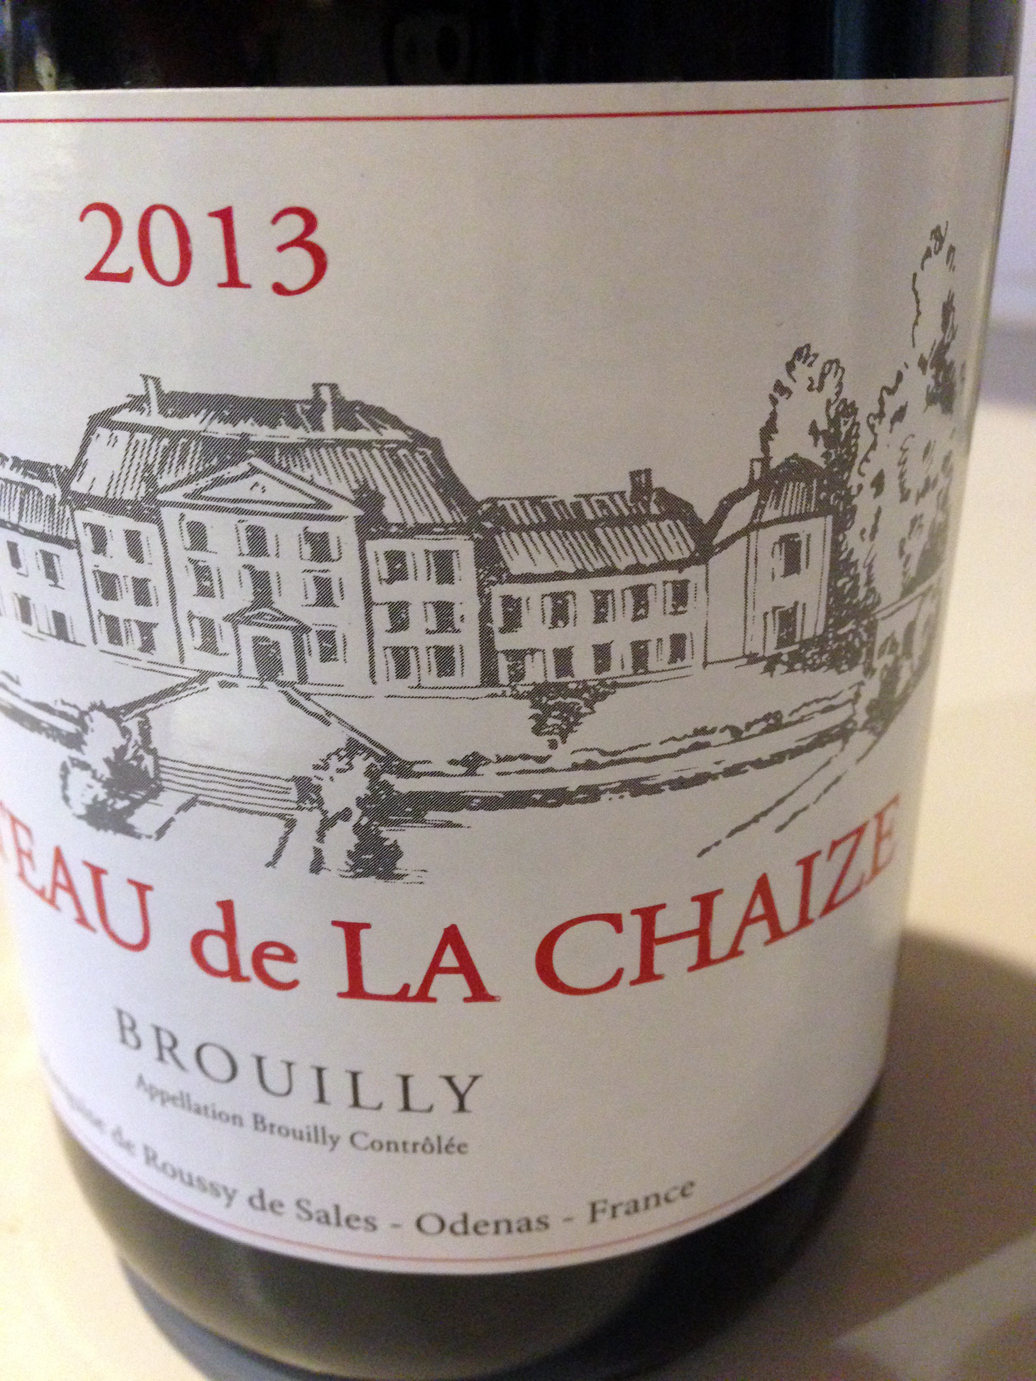 I love a Brouilly. This one exhibited a delightful perfume of blueberries, cherries, raspberries and currants.